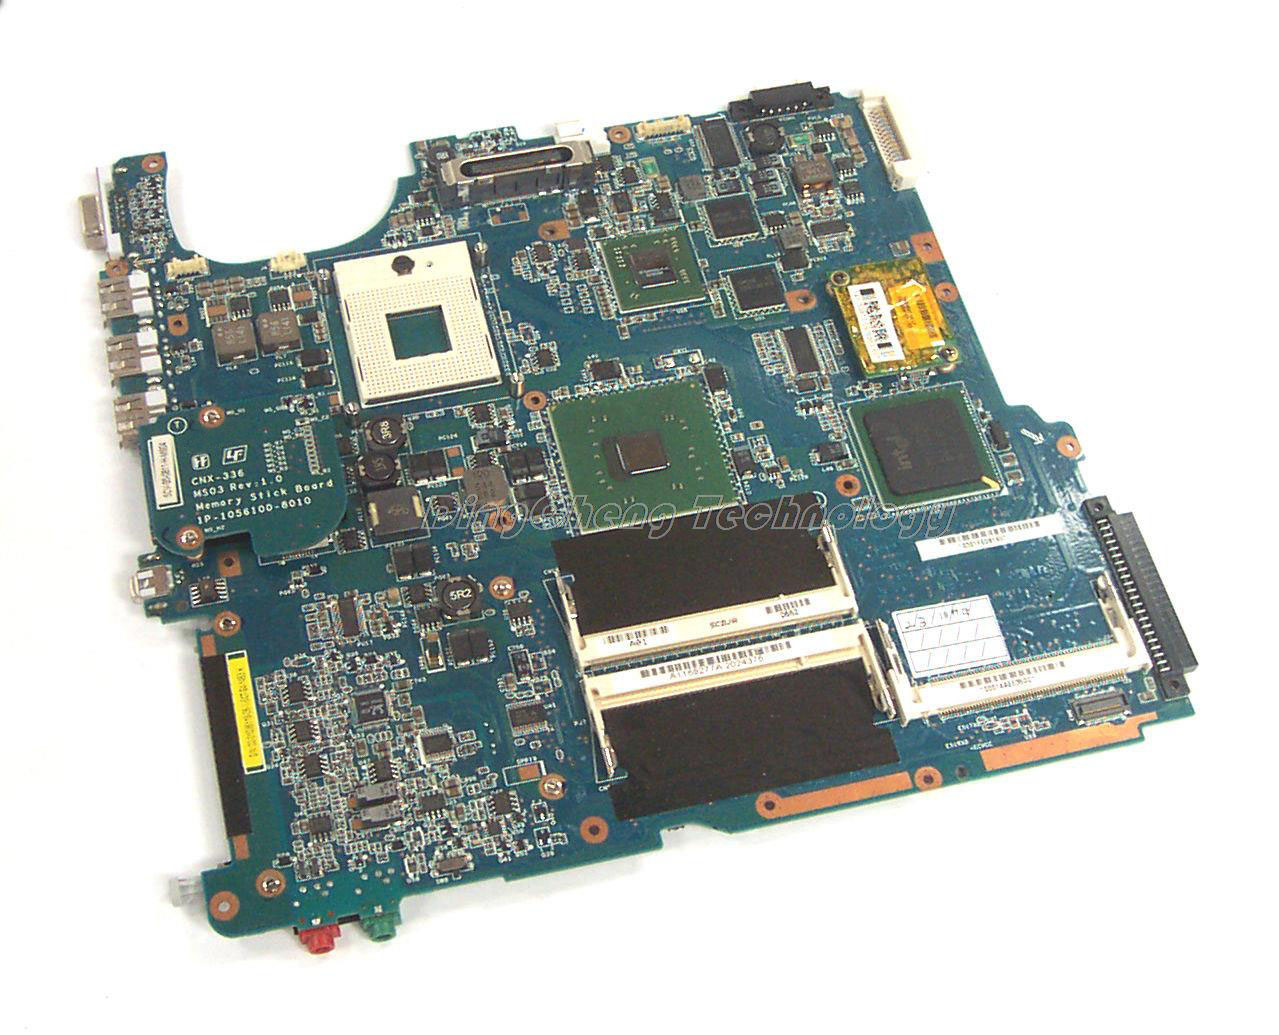 SHELI MBX 143 laptop Motherboard For Sony MBX-143 MS04-M/B A1168157A 1P-0058100-8012 non-integrated graphics card sheli mbx 143 laptop motherboard for sony mbx 143 ms04 m b a1142569a 1p 0058100 8012 for intel cpu with integrated graphics card